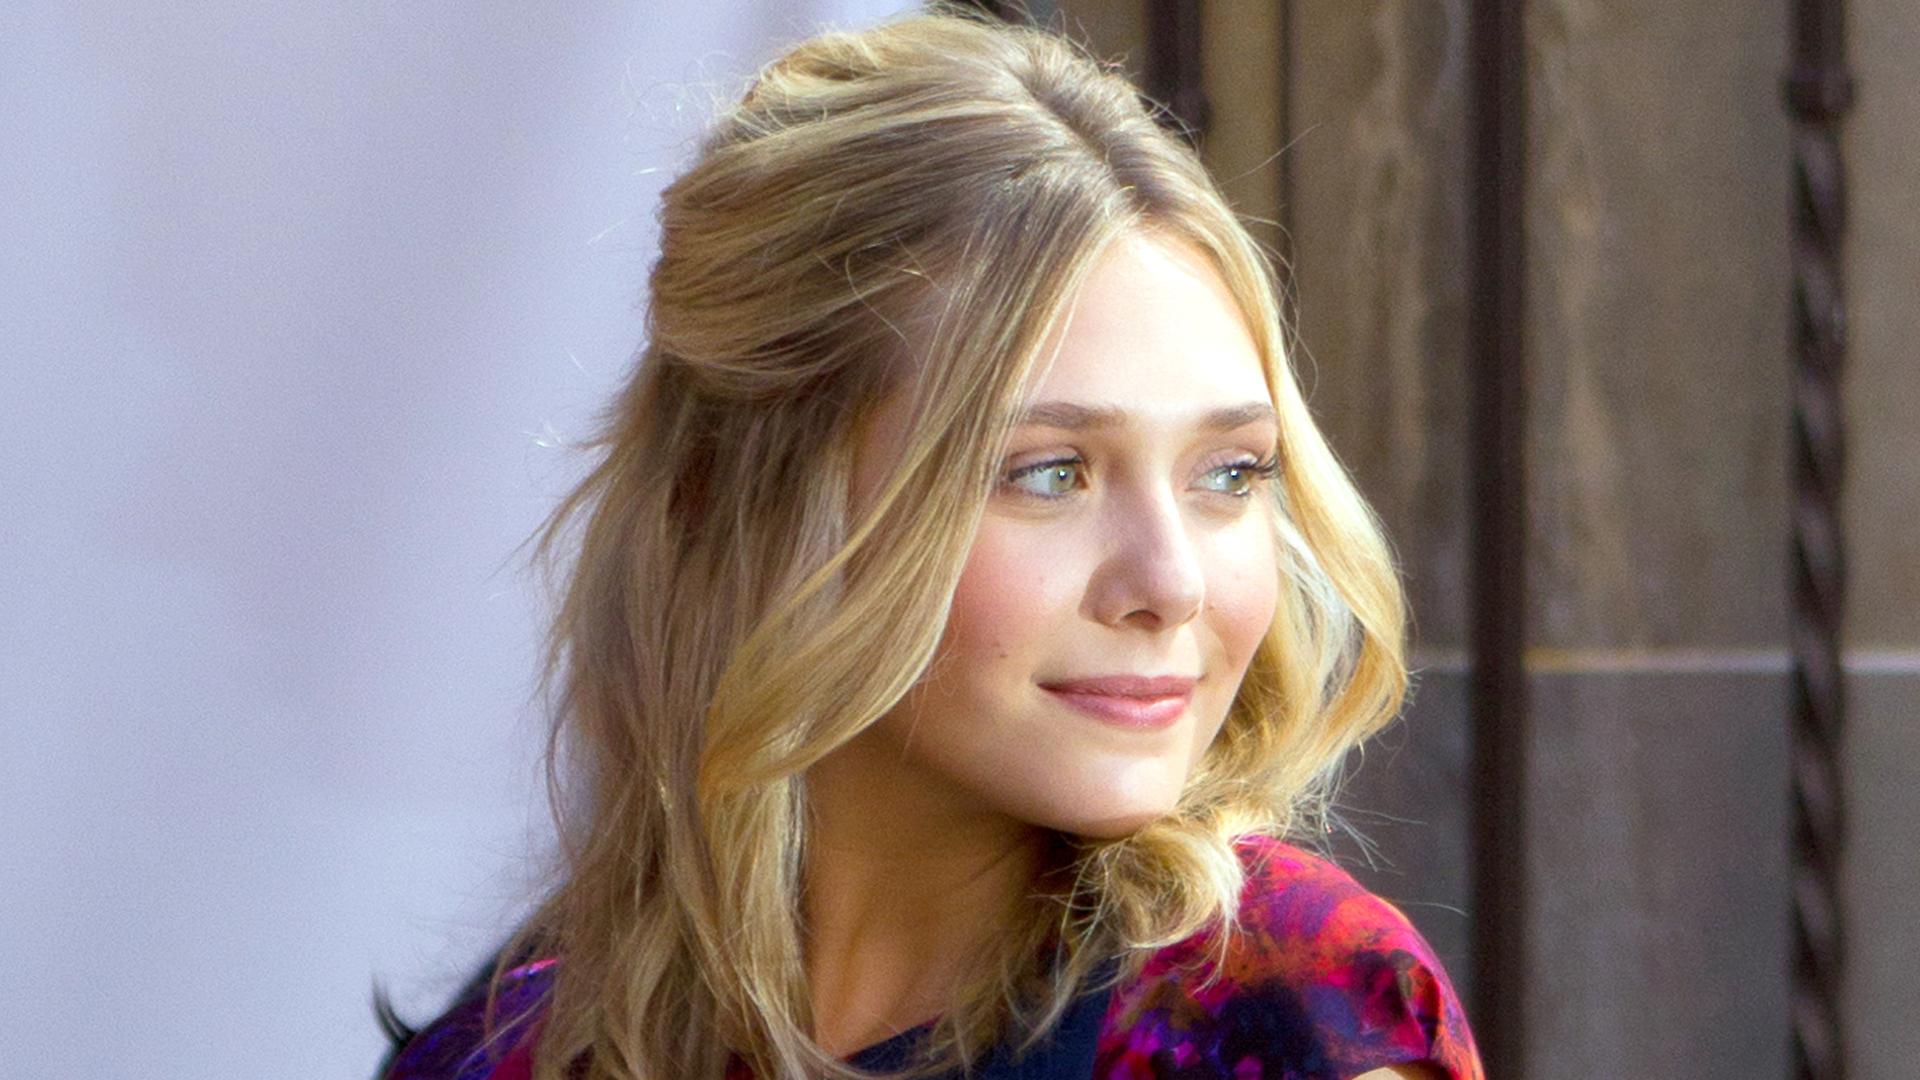 HD Elizabeth Olsen Wallpapers HdCoolWallpapersCom 1920x1080